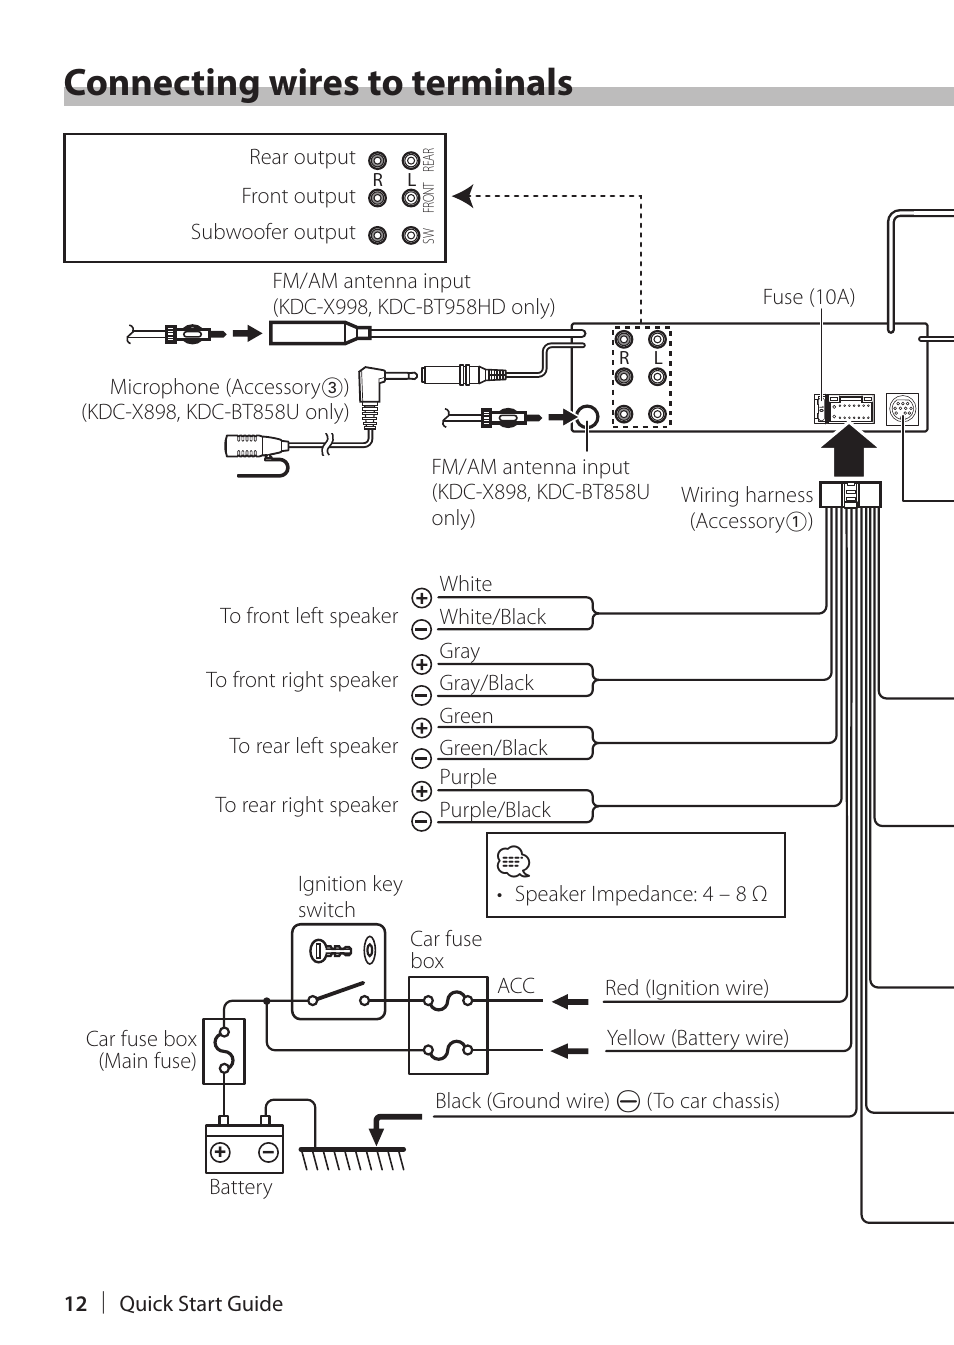 Kenwood Dnx7100 Wiring Diagram: 100 Ideas Kenwood Ddx7019 Wiring Xl 350 Wiring  Diagram Perkins Jcb